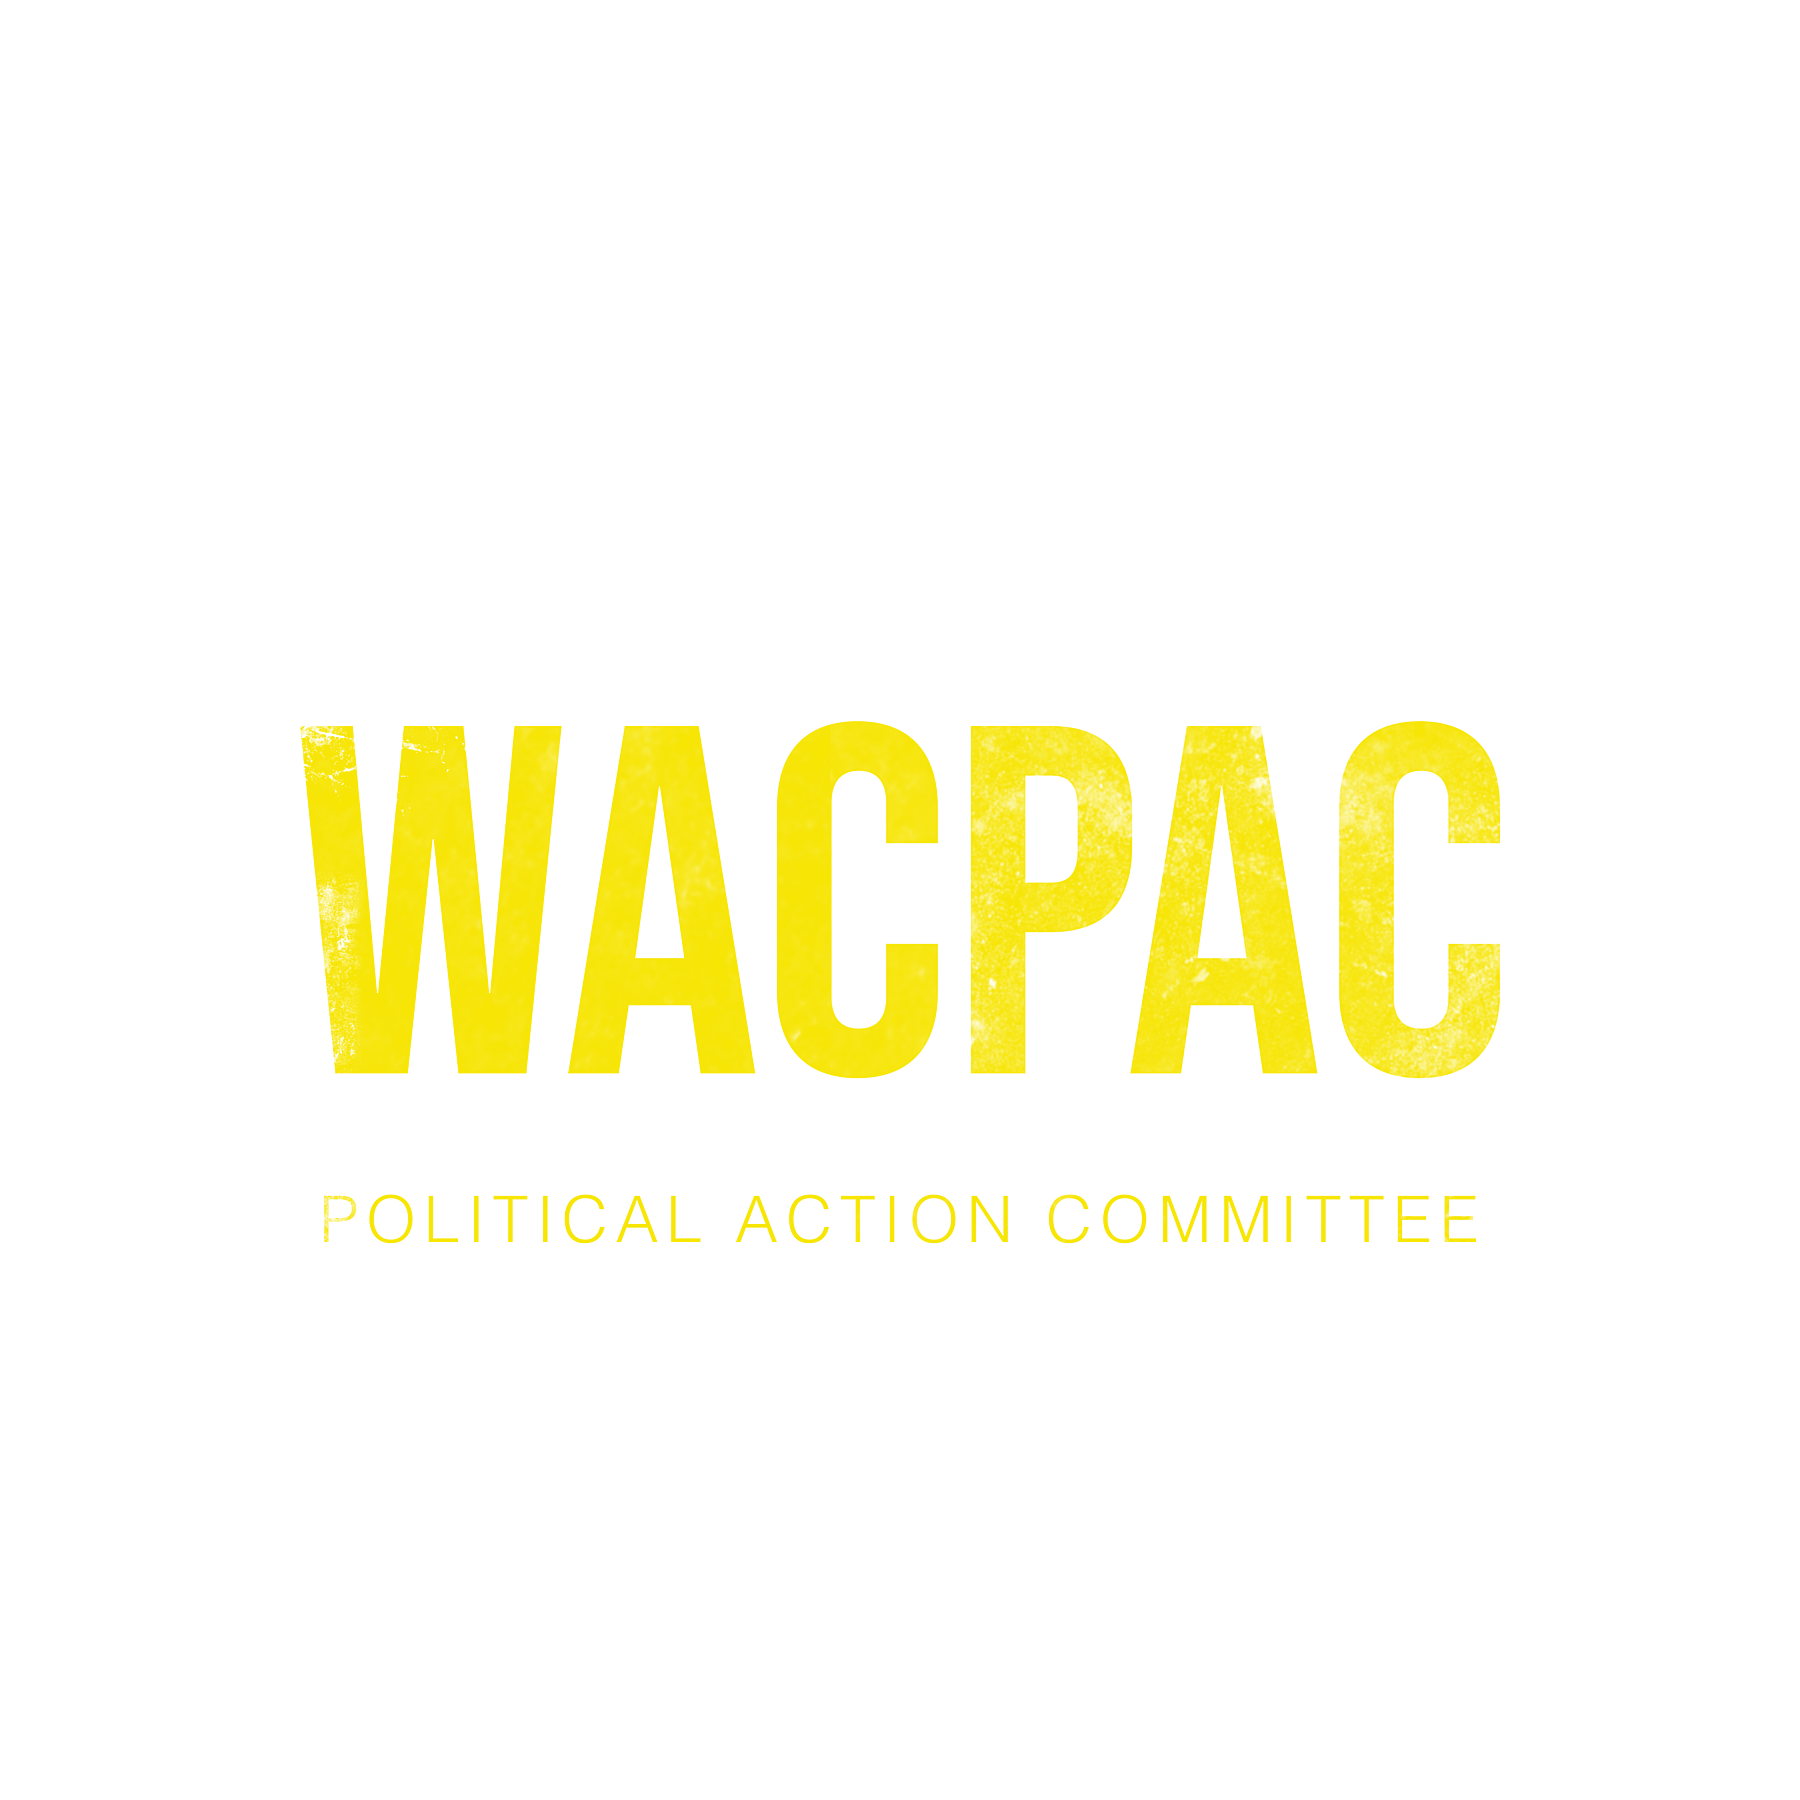 #WalkAway Campaign PAC: General Fund